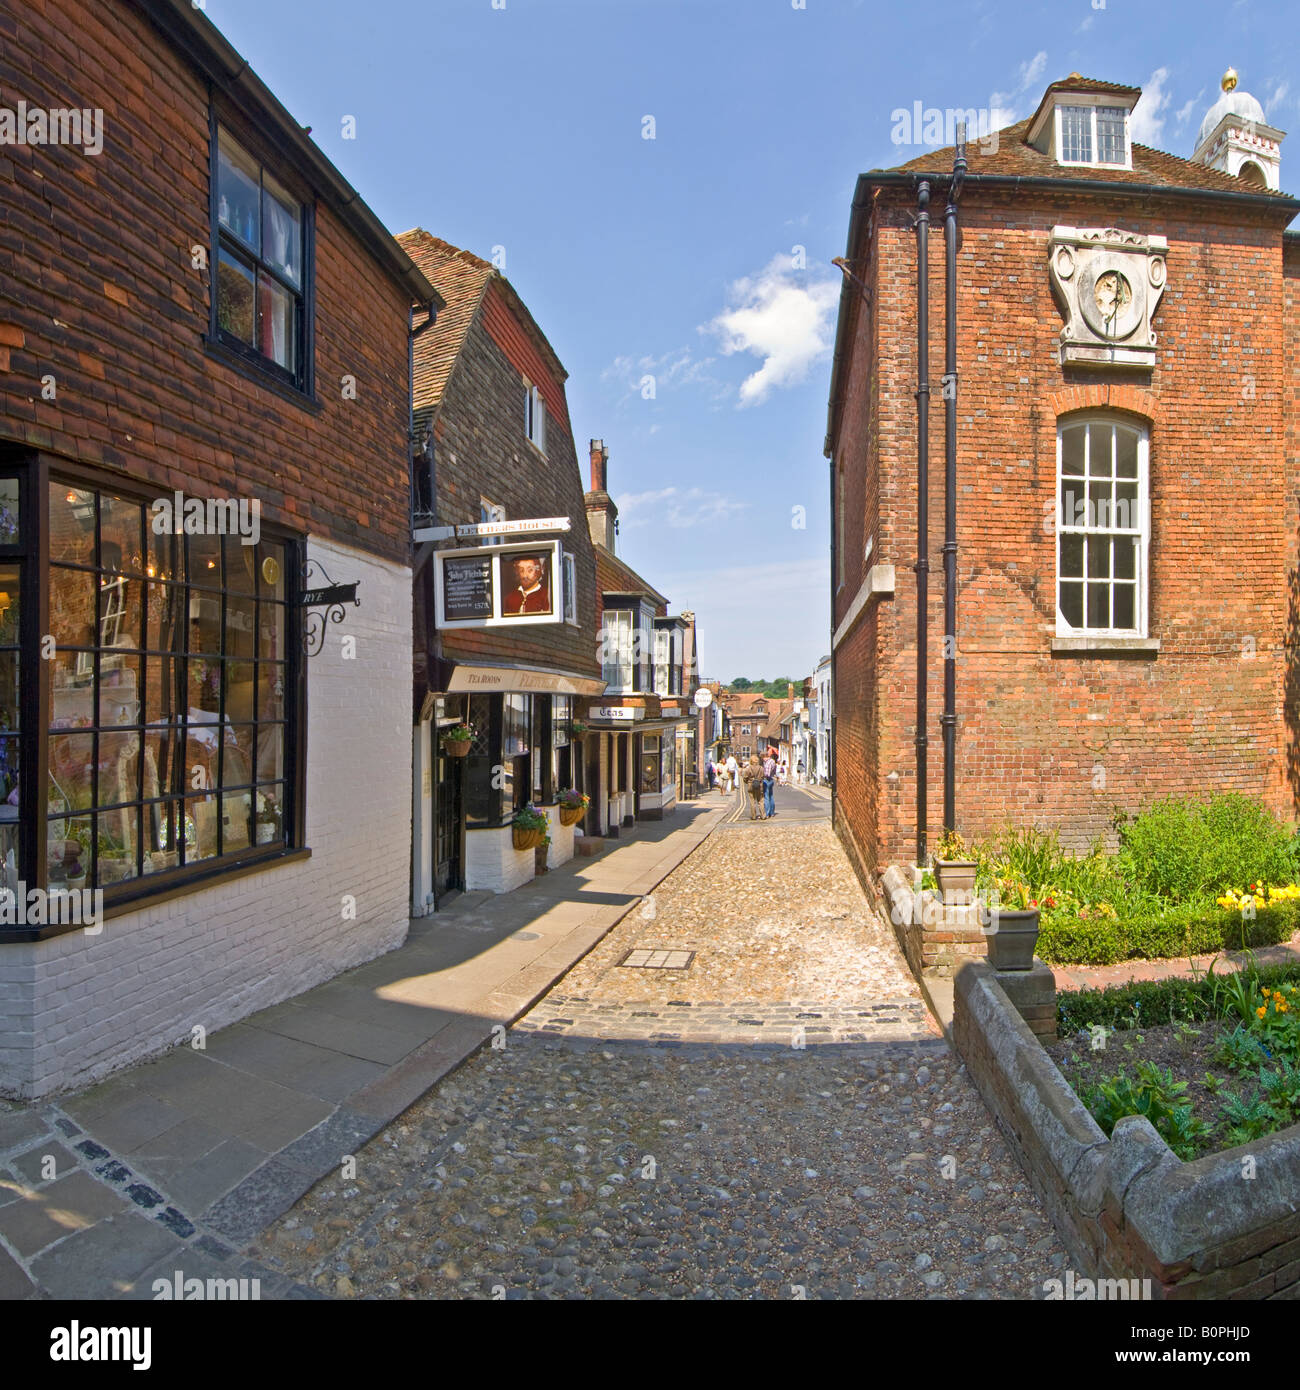 A 2 picture stitch panoramic image of Lion street showing typical architecture of Rye. - Stock Image